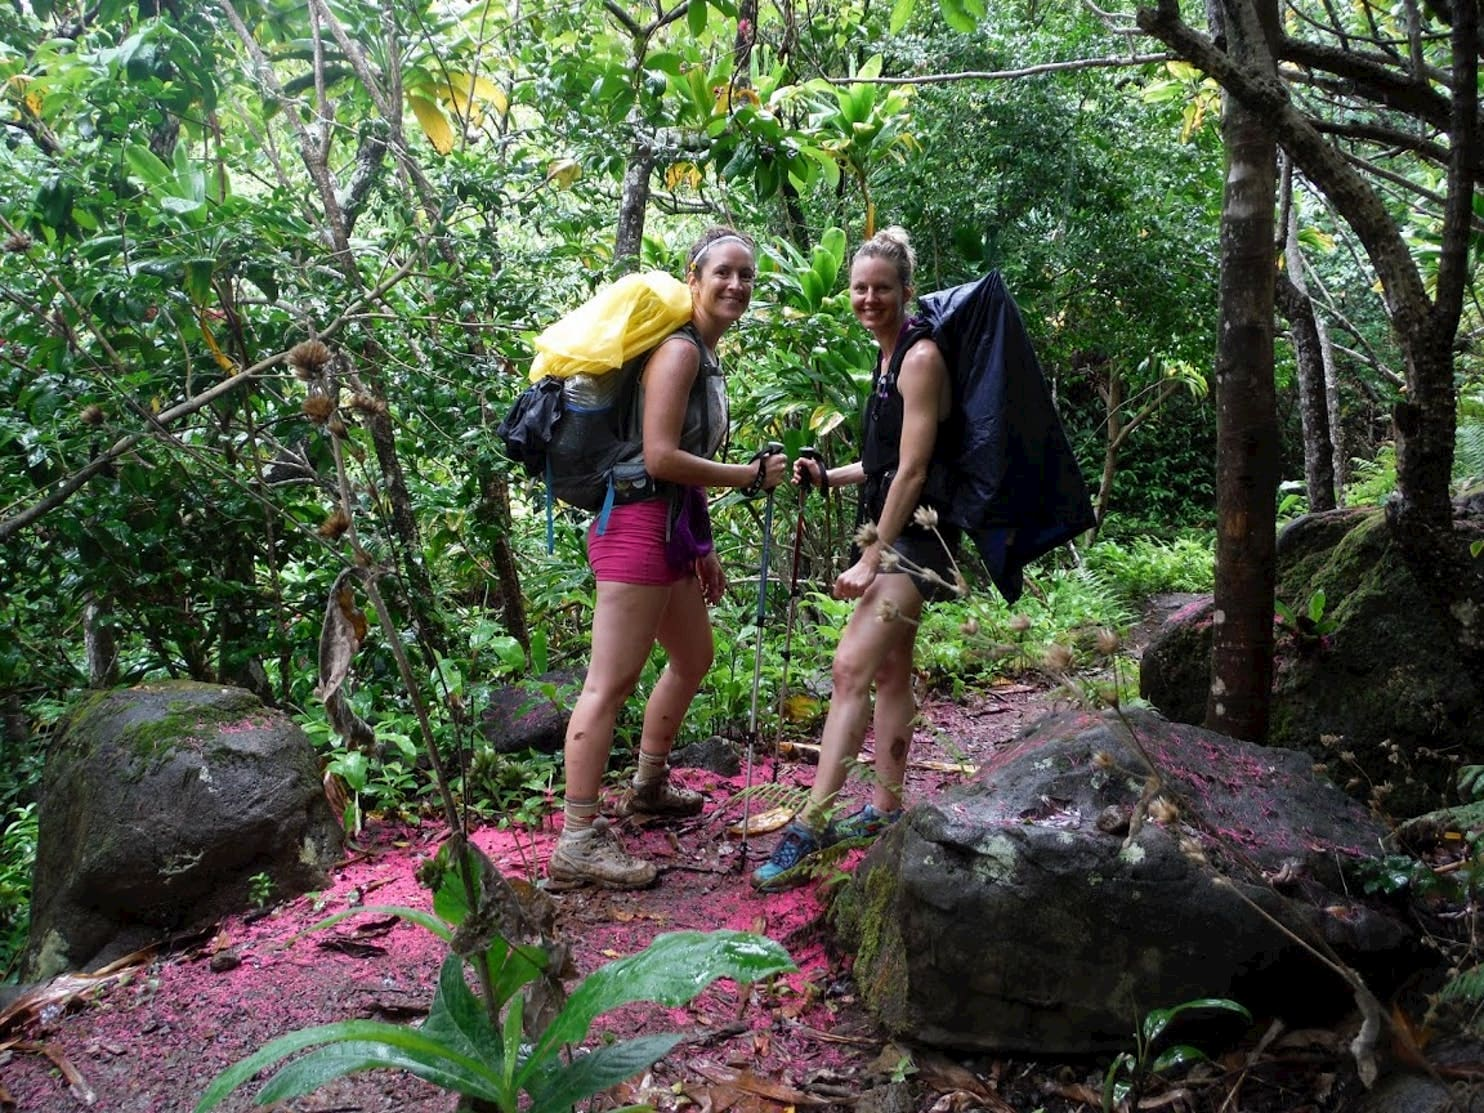 Two women backpackers hiking with trekking poles in the jungle.